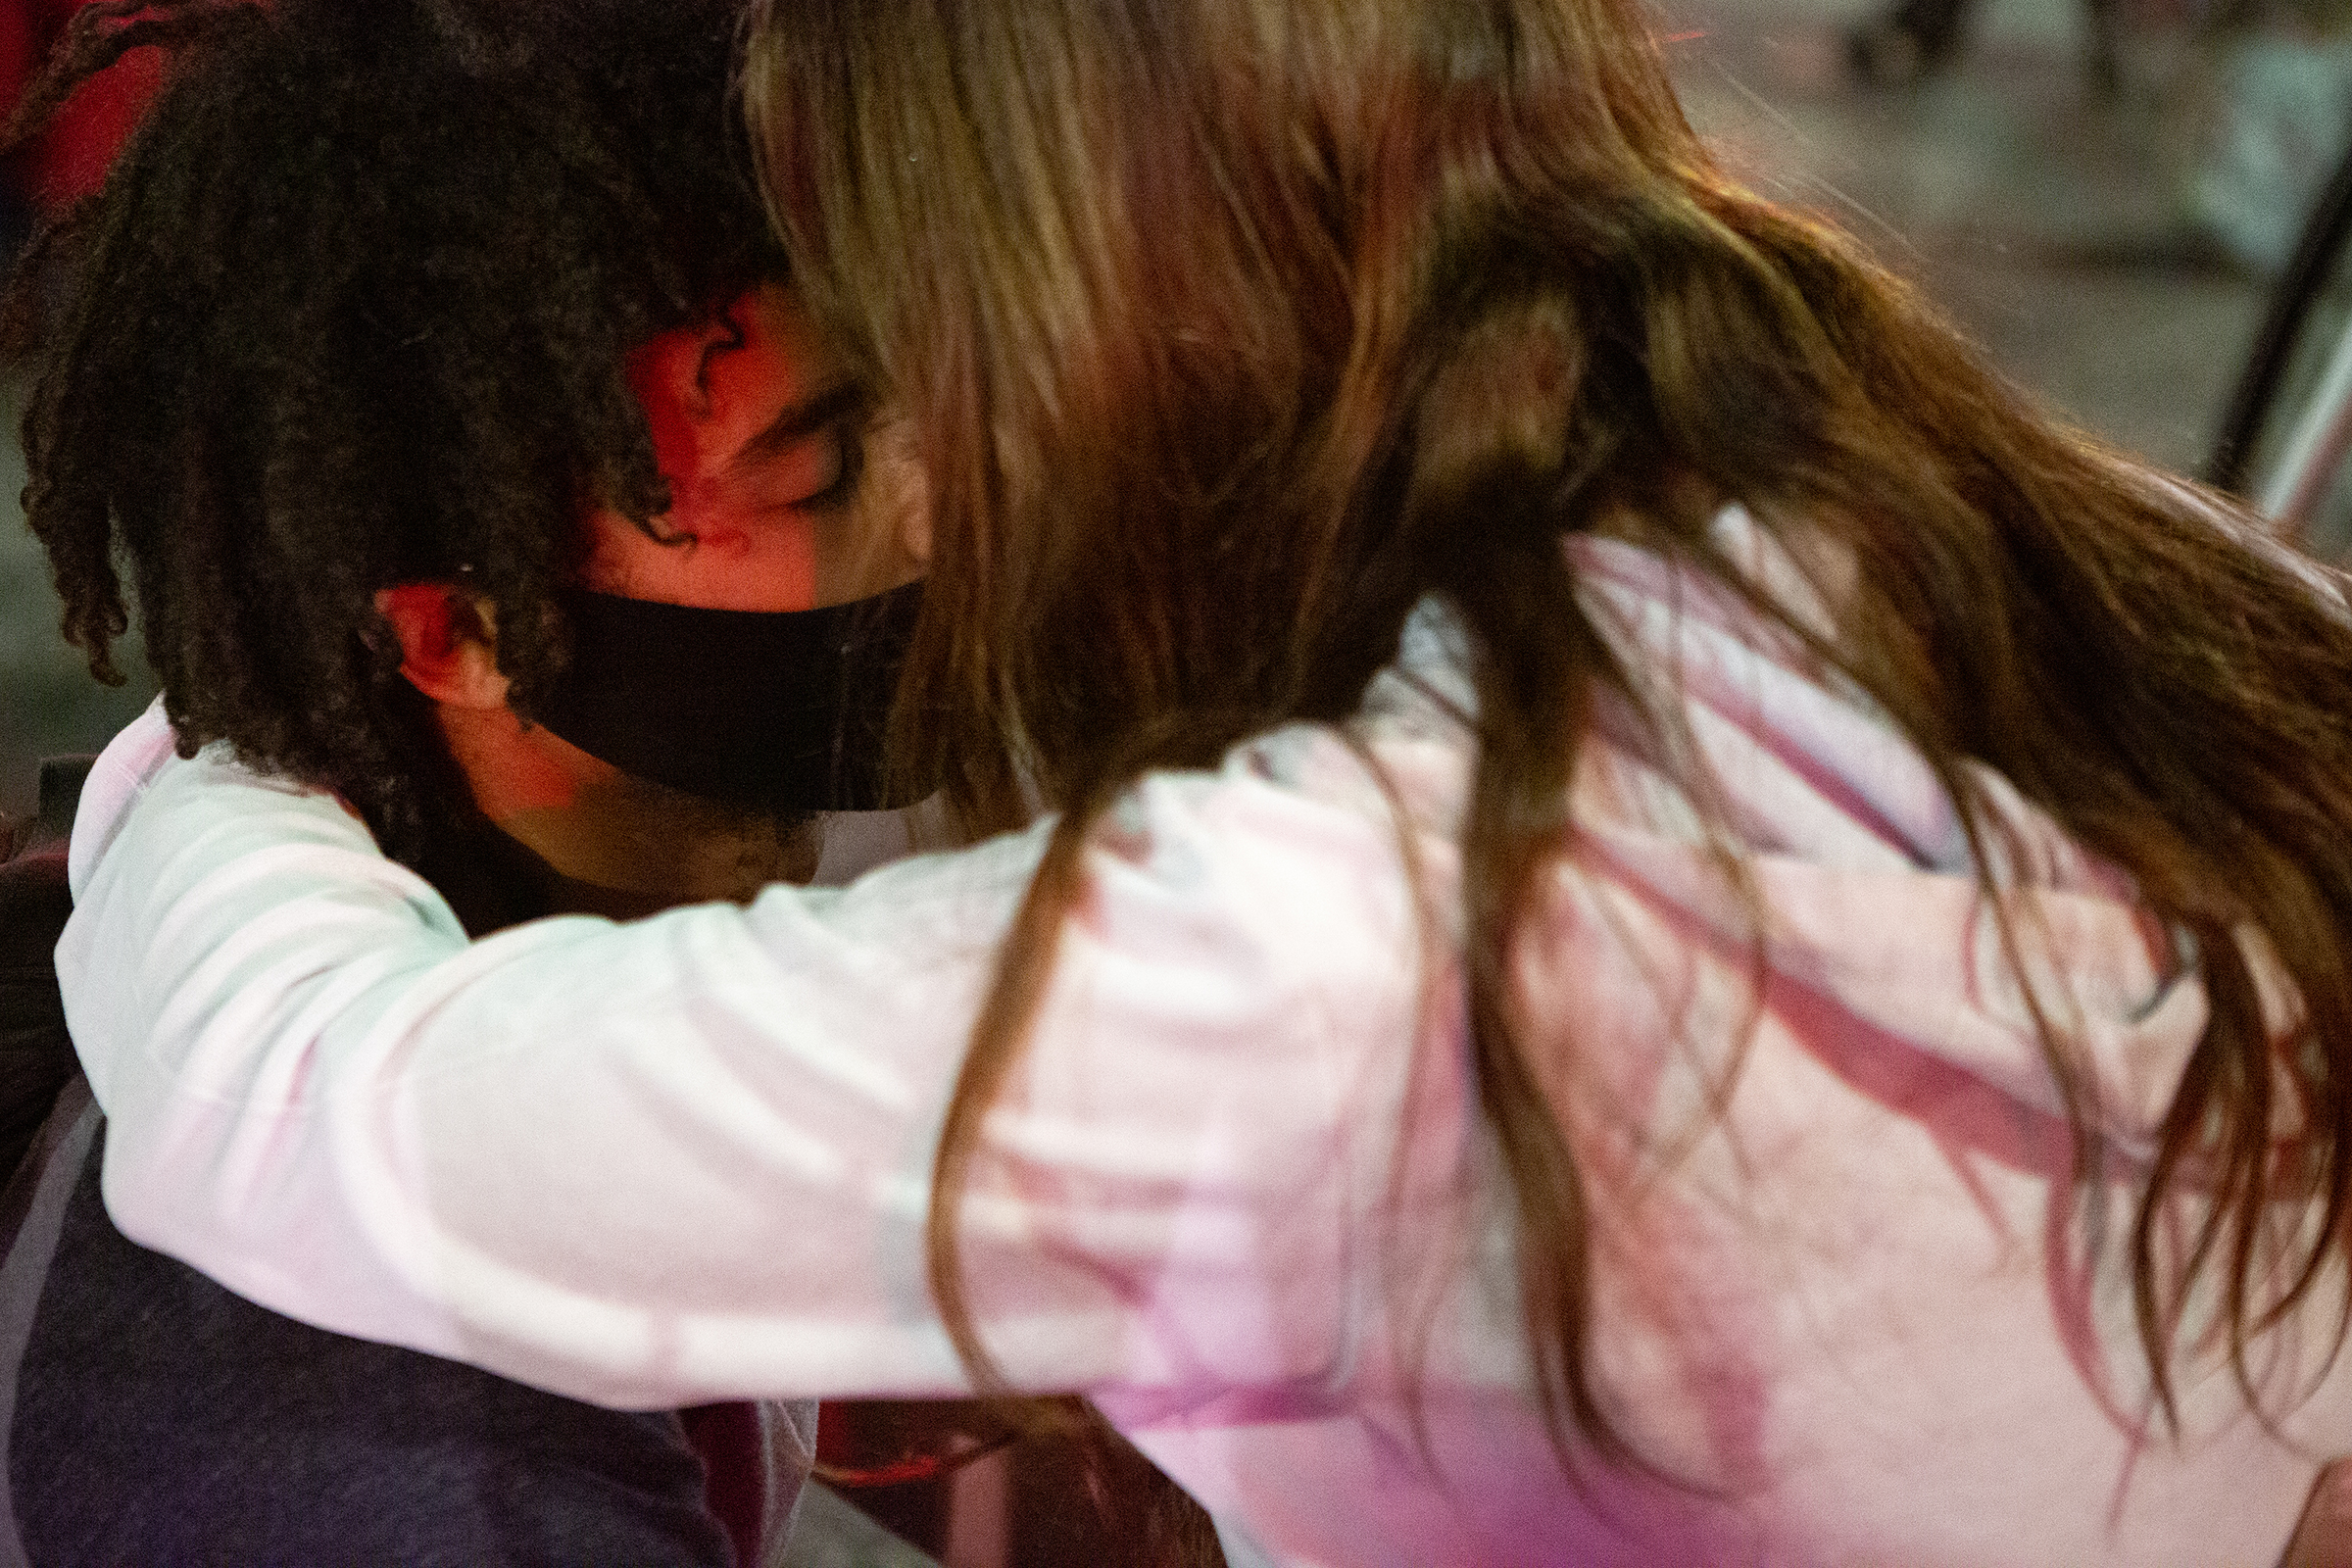 Two protesters embrace while occupying the intersection of South Hill Street and W Second Street after a Black Lives Matter protest in Los Angeles on May 27.